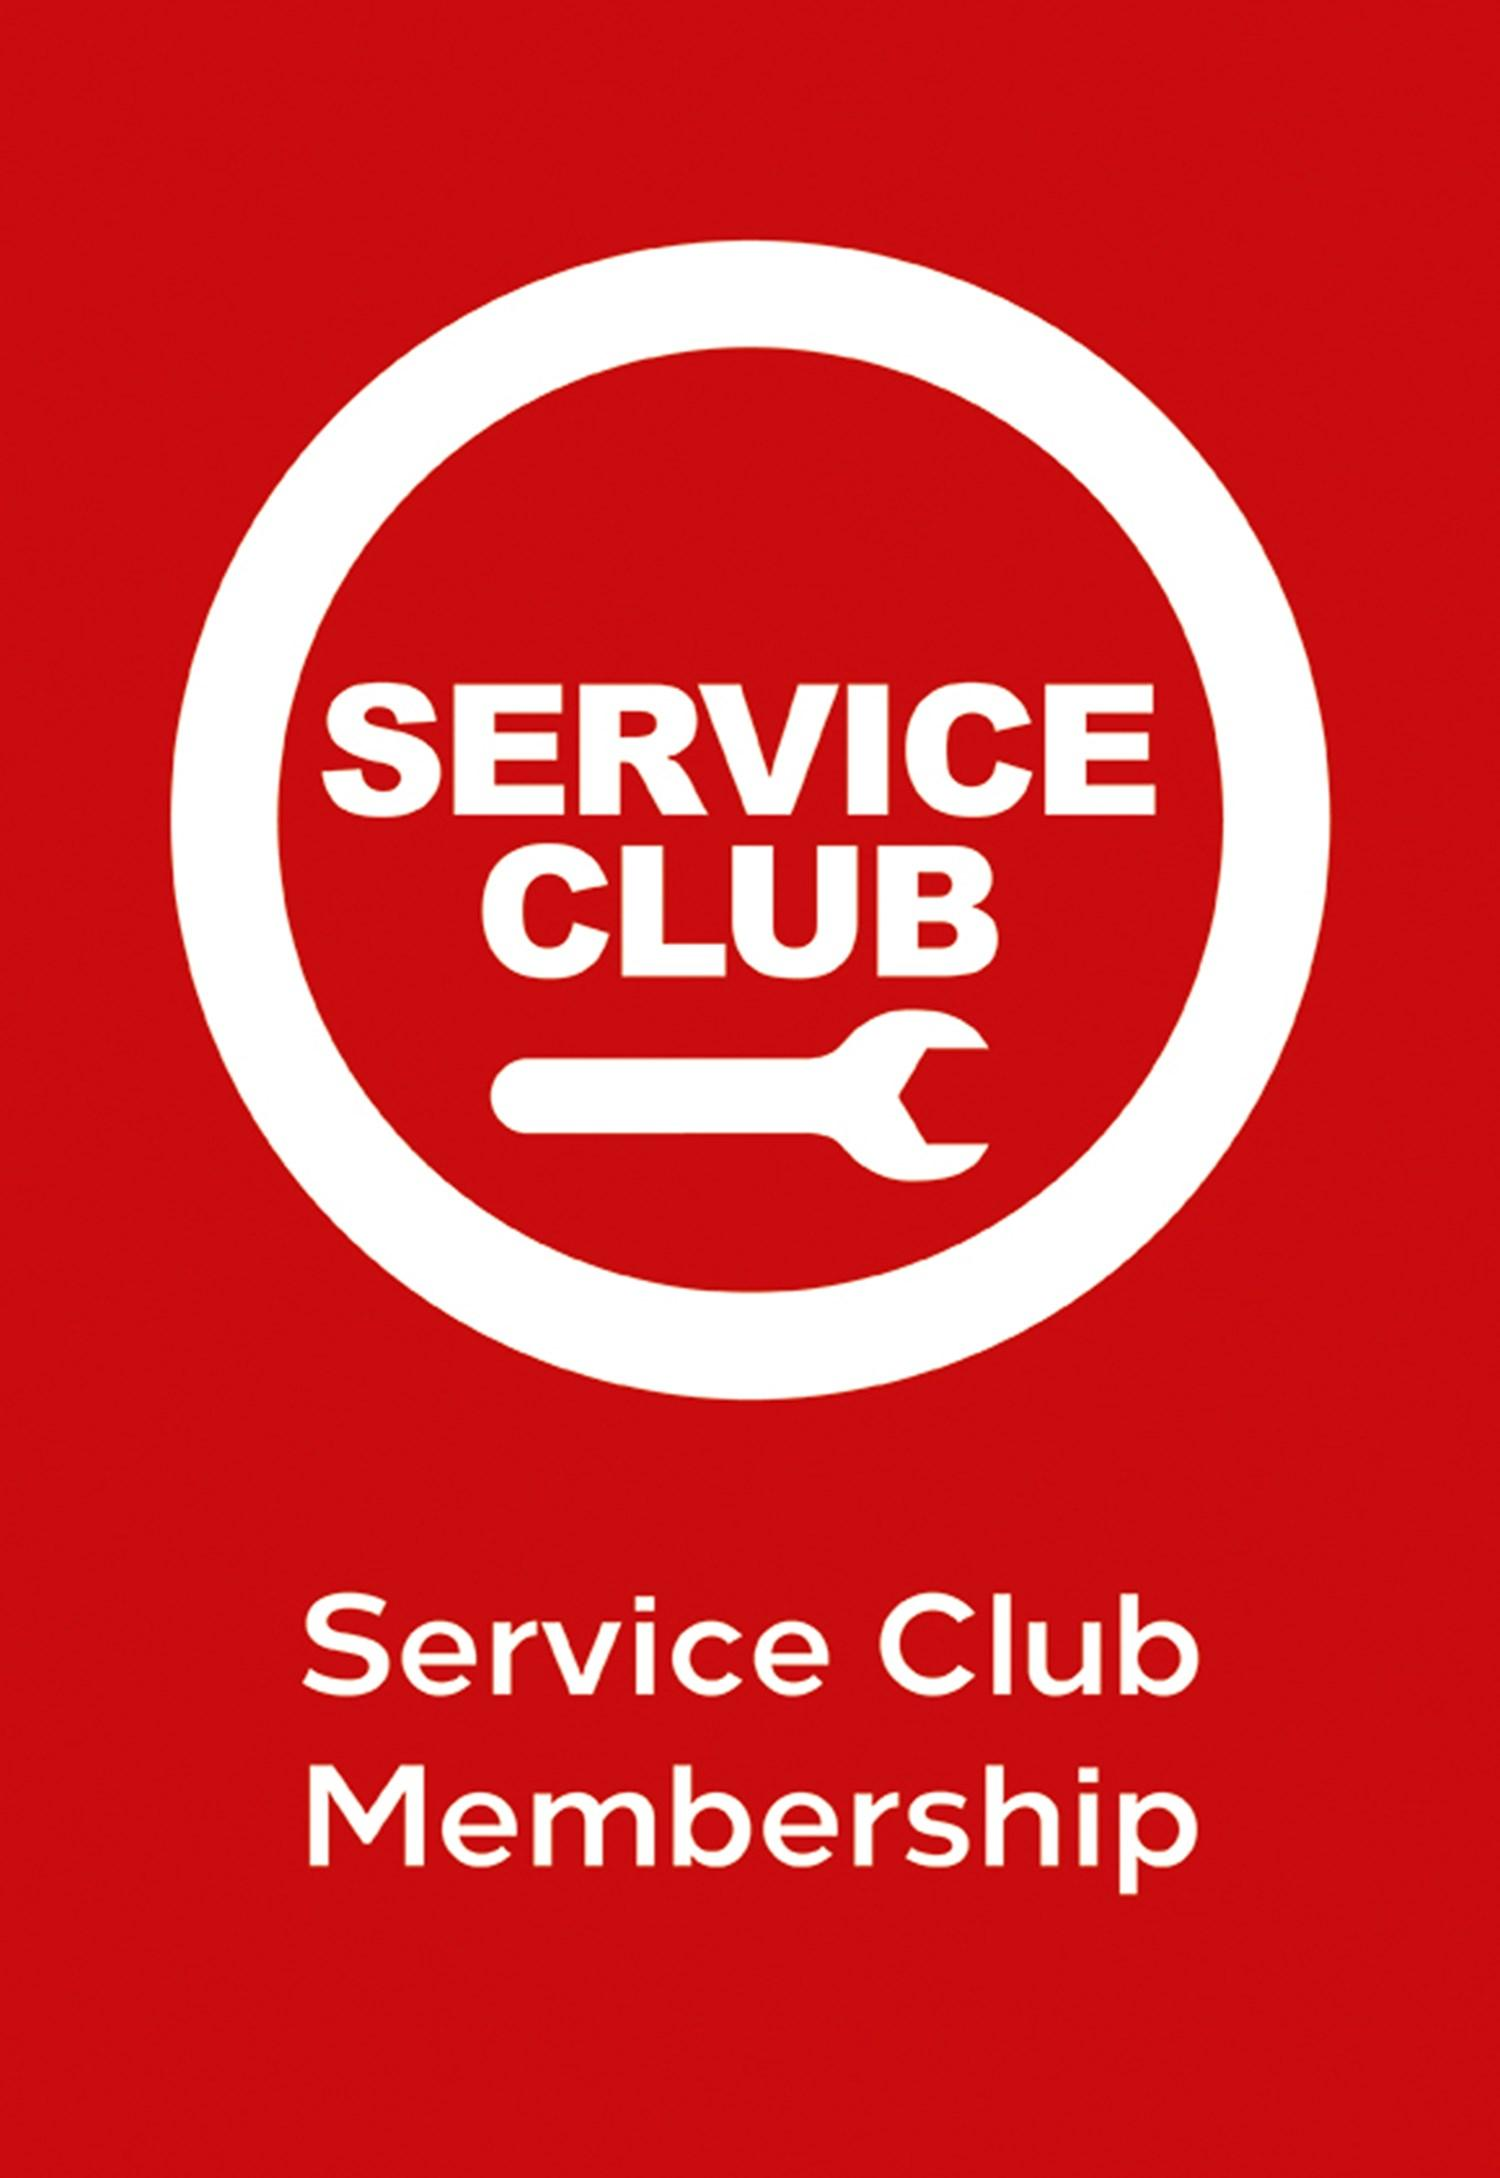 Service Club Membership  All Network Q customers can sign up for Vauxhall Service Club, which offers discounts on servicing and repairs and 50% off MOTs.